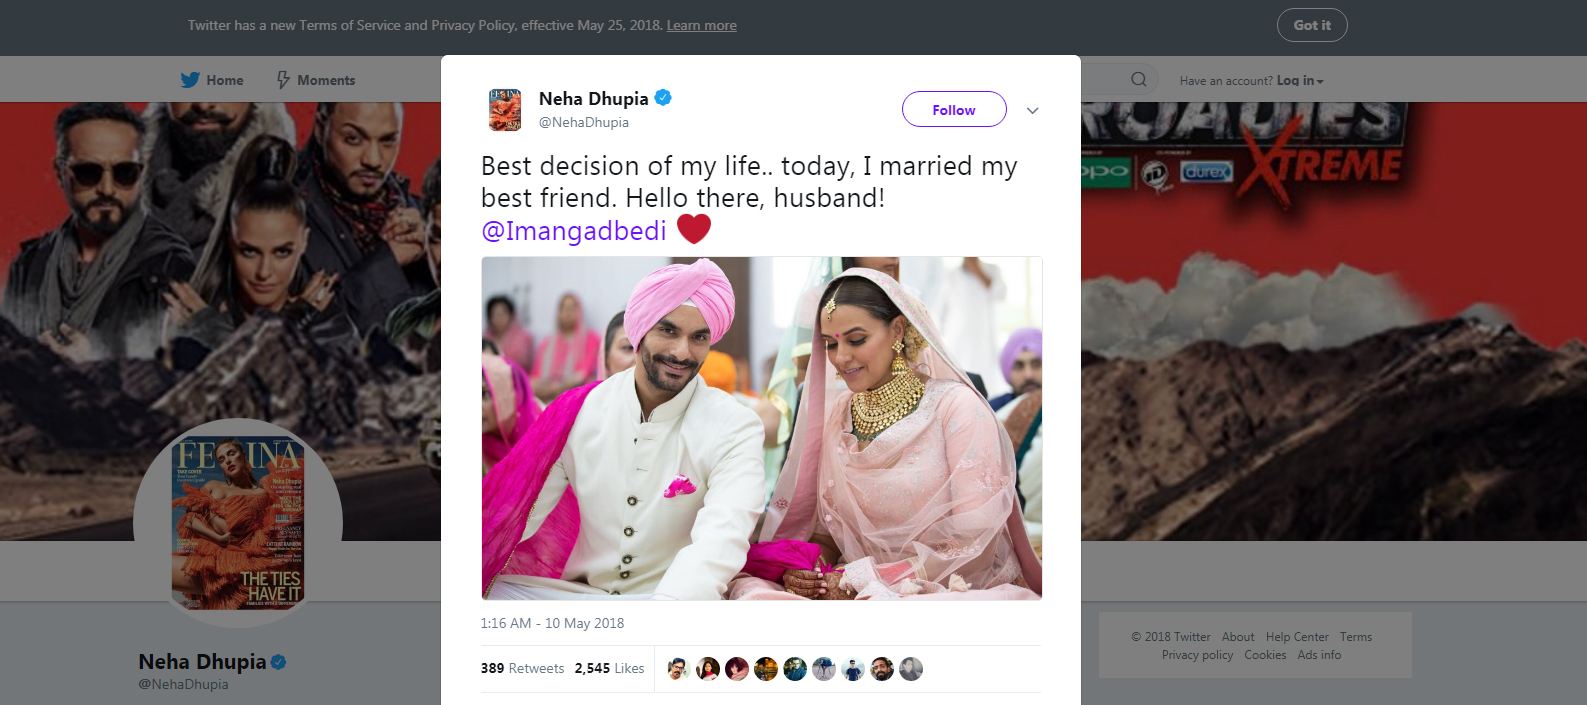 Neha and Angad are now husband and wife